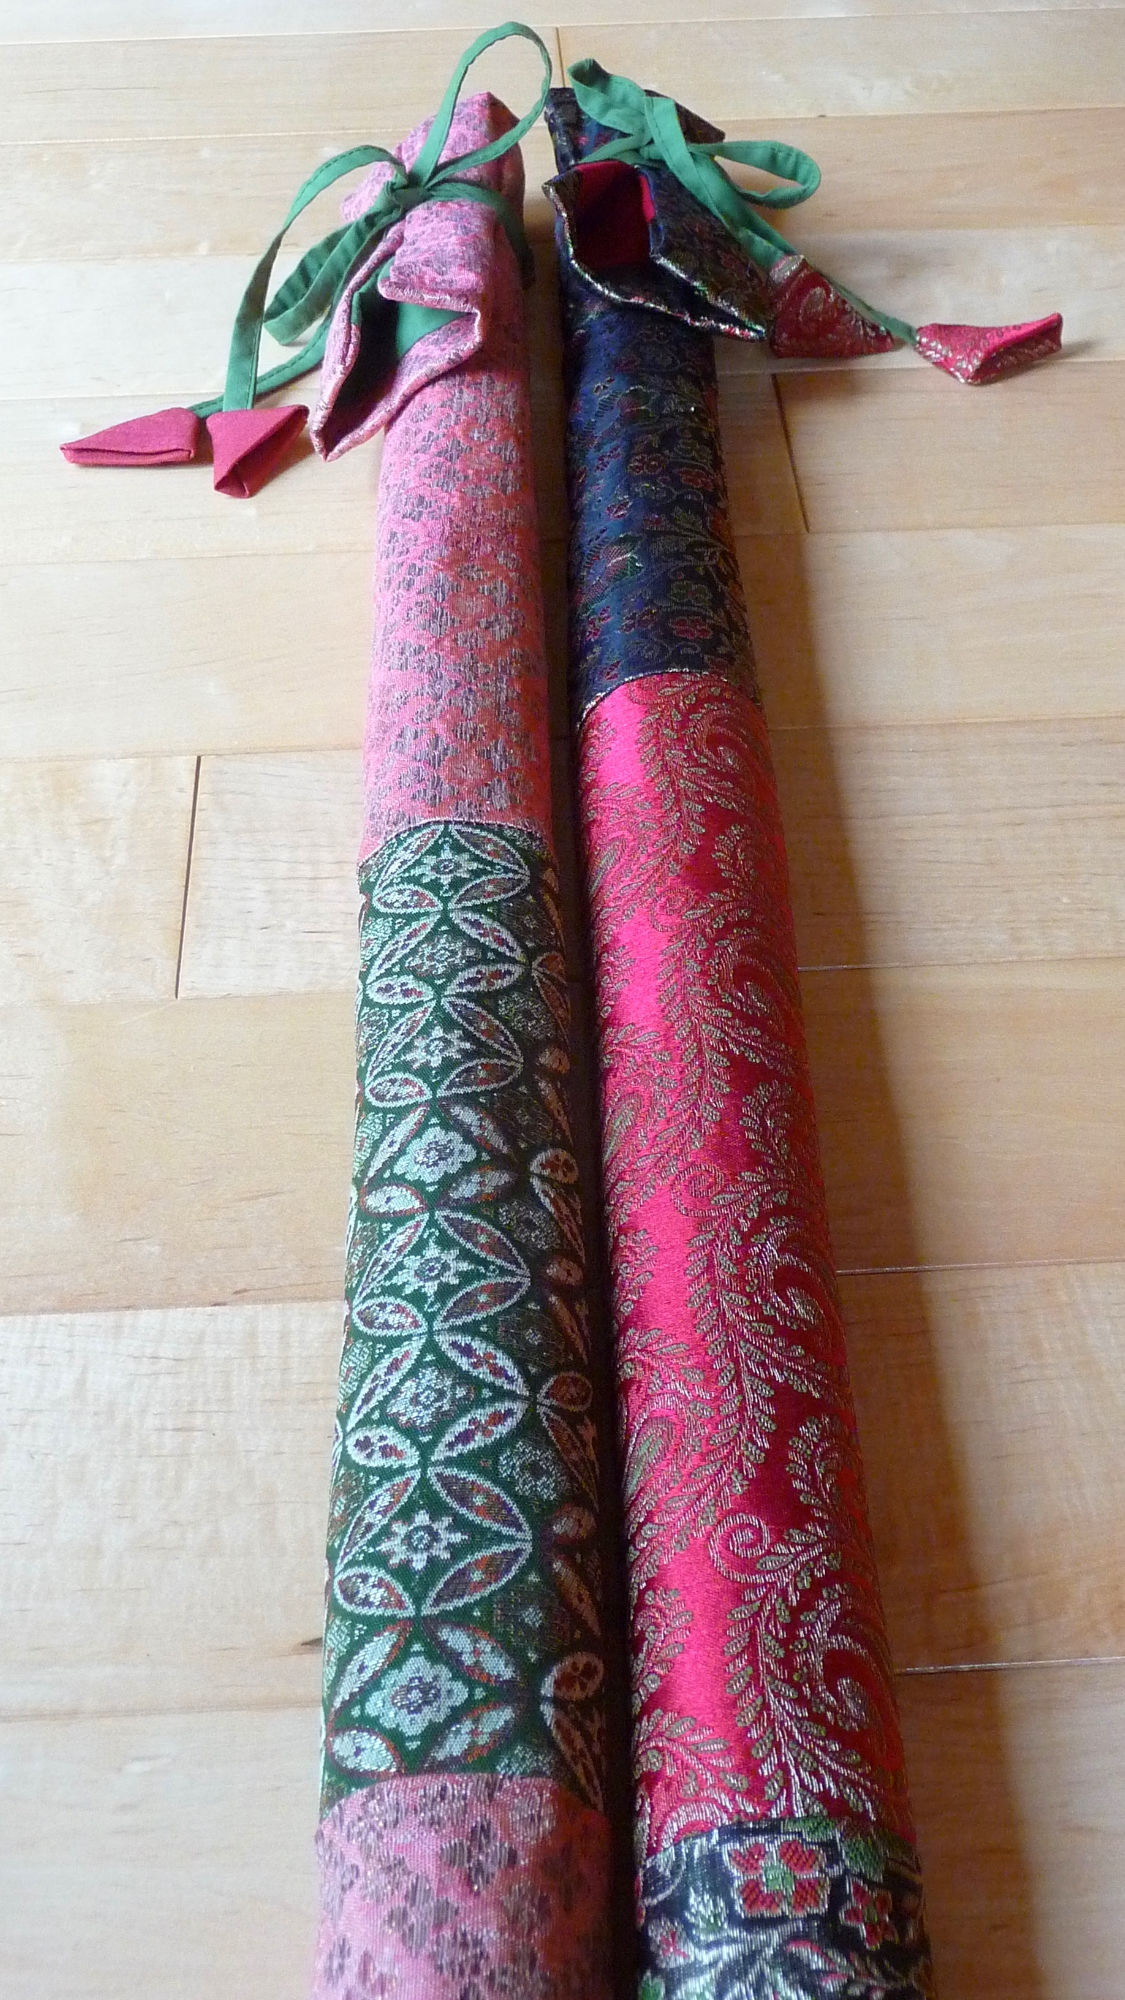 Bansuri Flute Covers - Indian Brocade